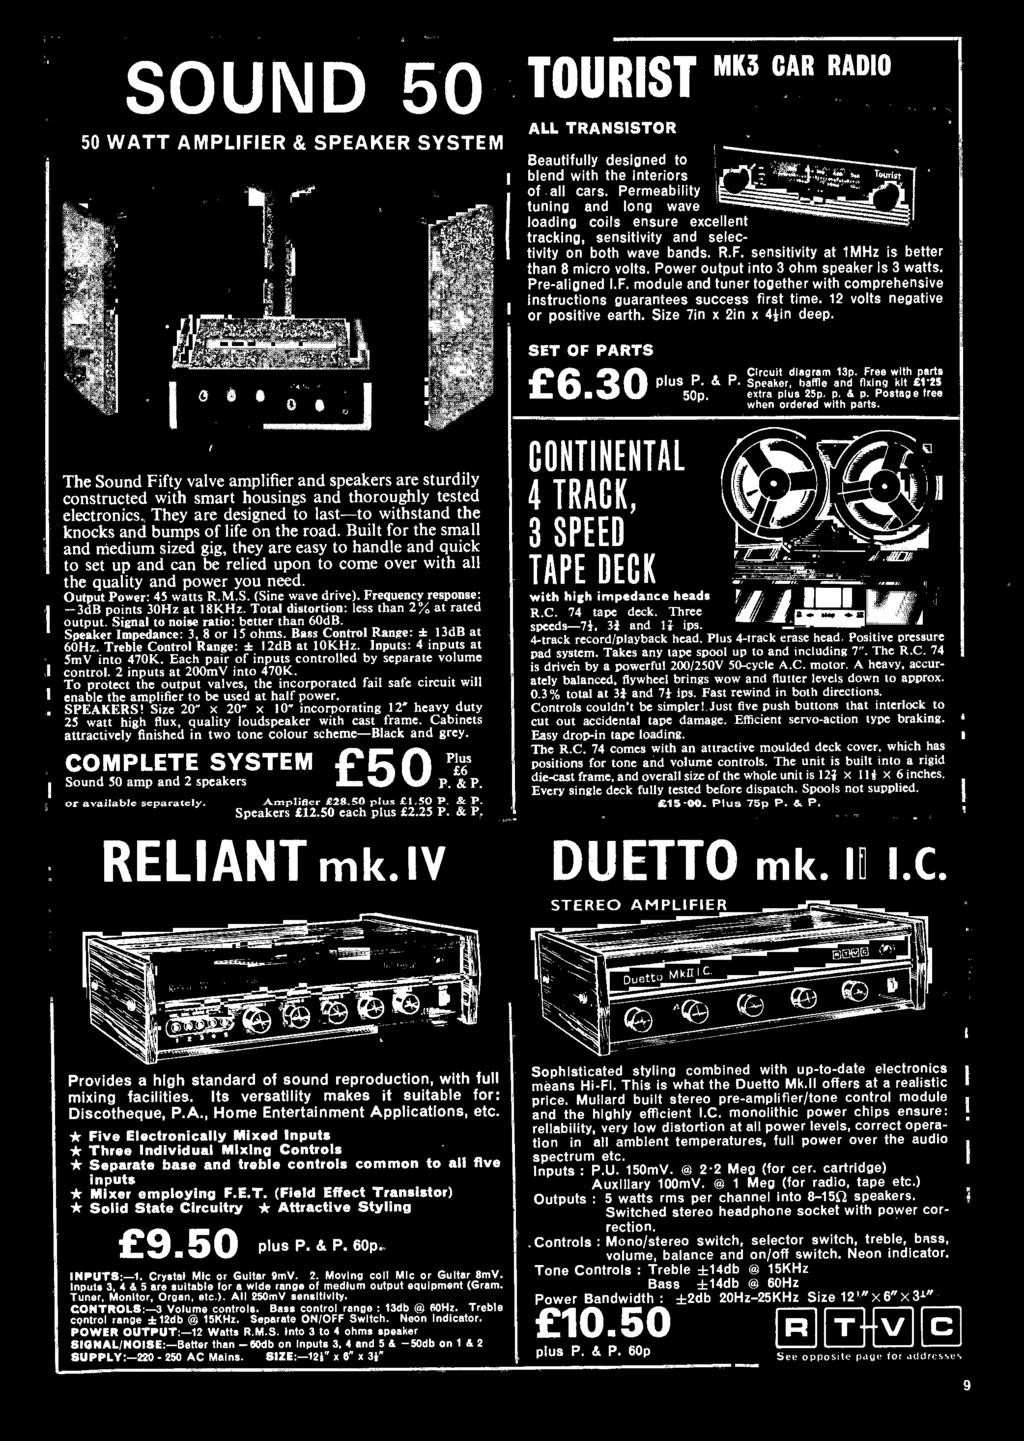 Wireless Amp B Pages Of 5eicdnductdr 20 Watt Zop I C Stereo 67 1967 Chevy Nova Electrical Wiring Diagram Manual Mikes The Sound Fifty Valve Amplifier And Speakers Are Sturdily Constructed With Smart Housings Thoroughly Tested